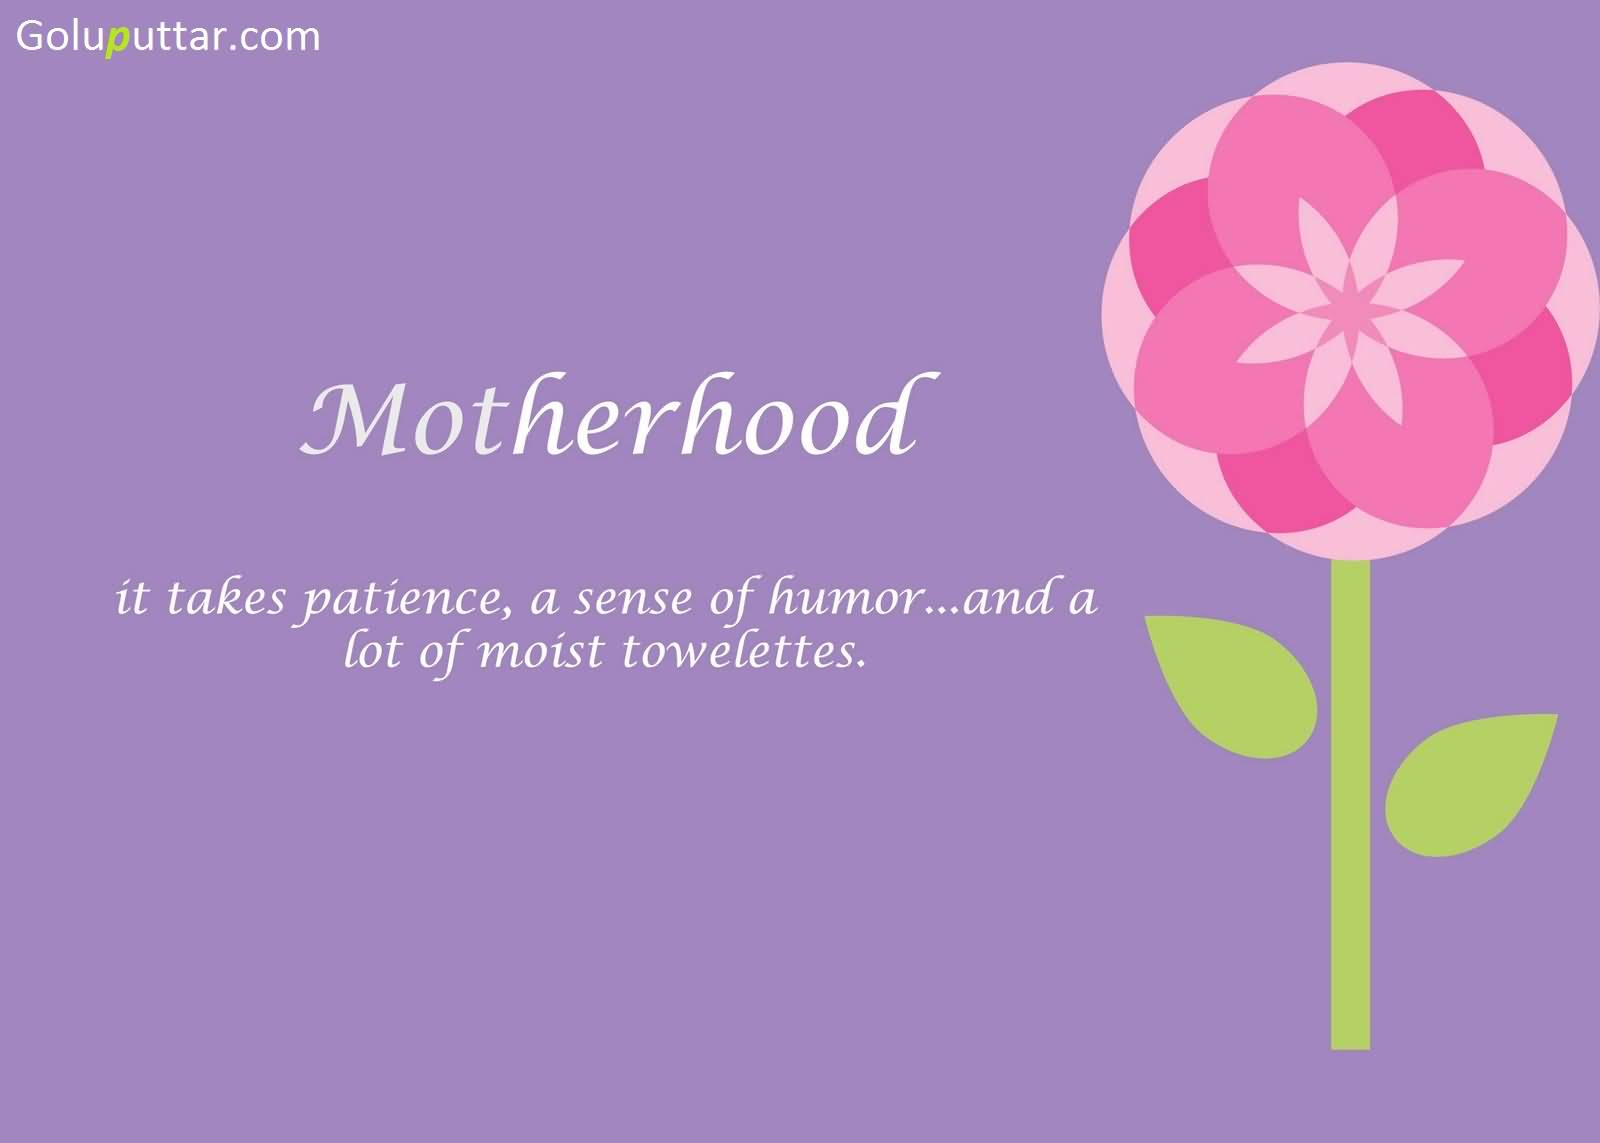 New Mom Quotes Entrancing New Mother Quote About Motherhood  Goluputtar